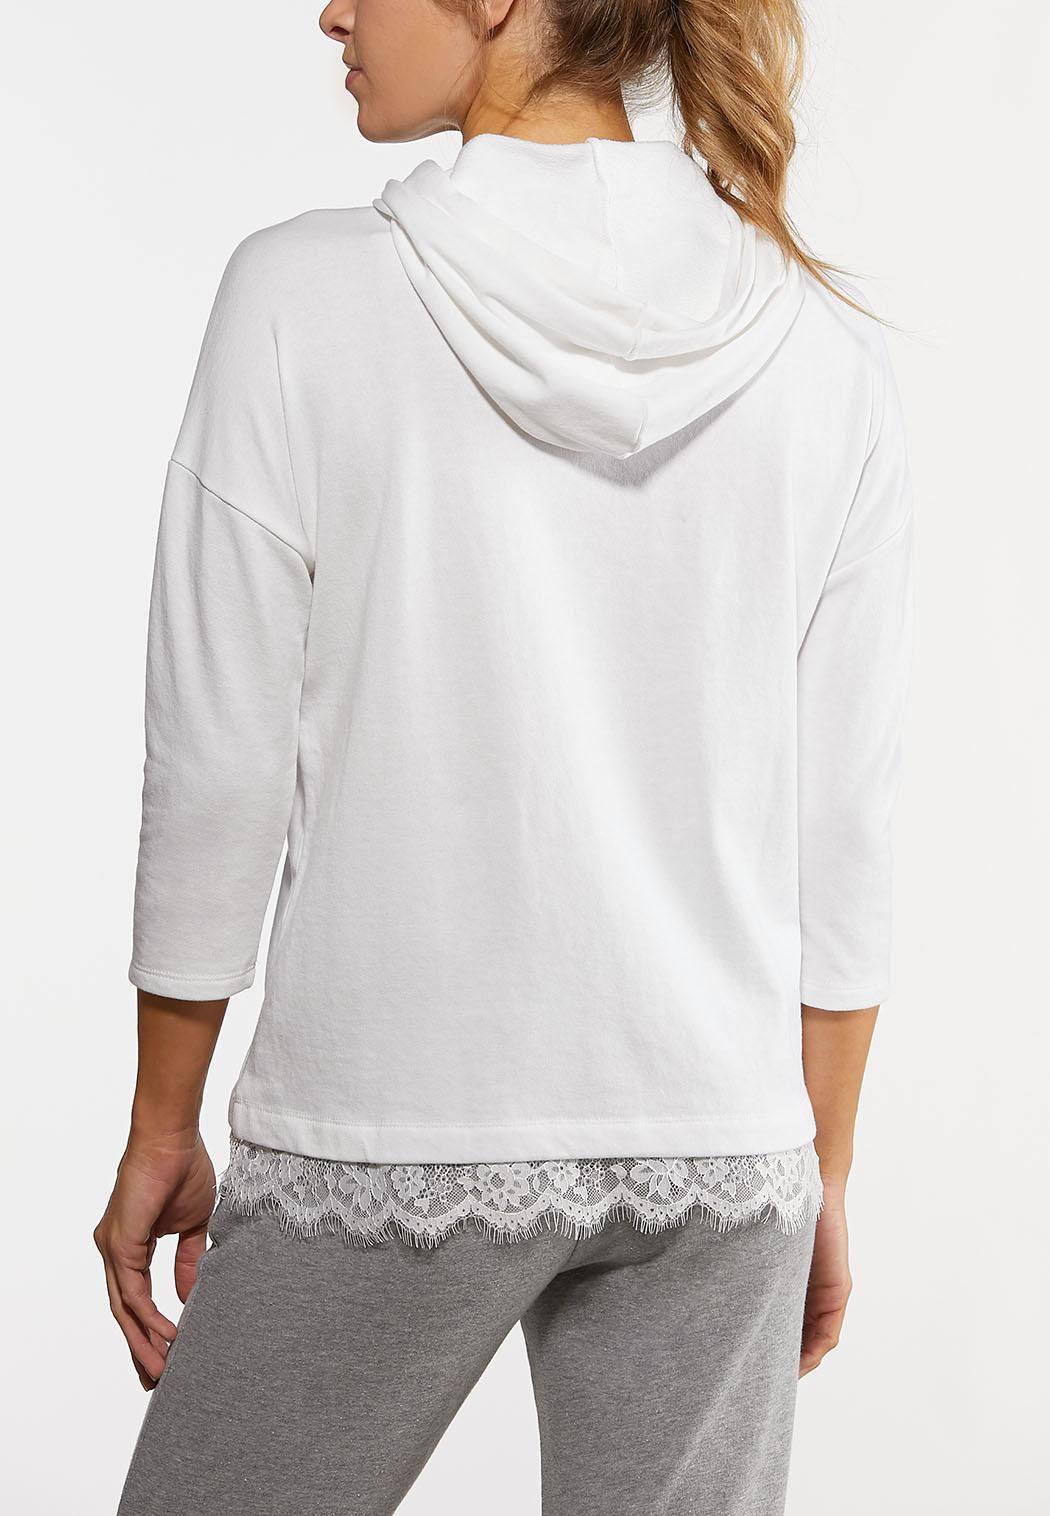 White Lace Trimmed Hoodie (Item #44168687)